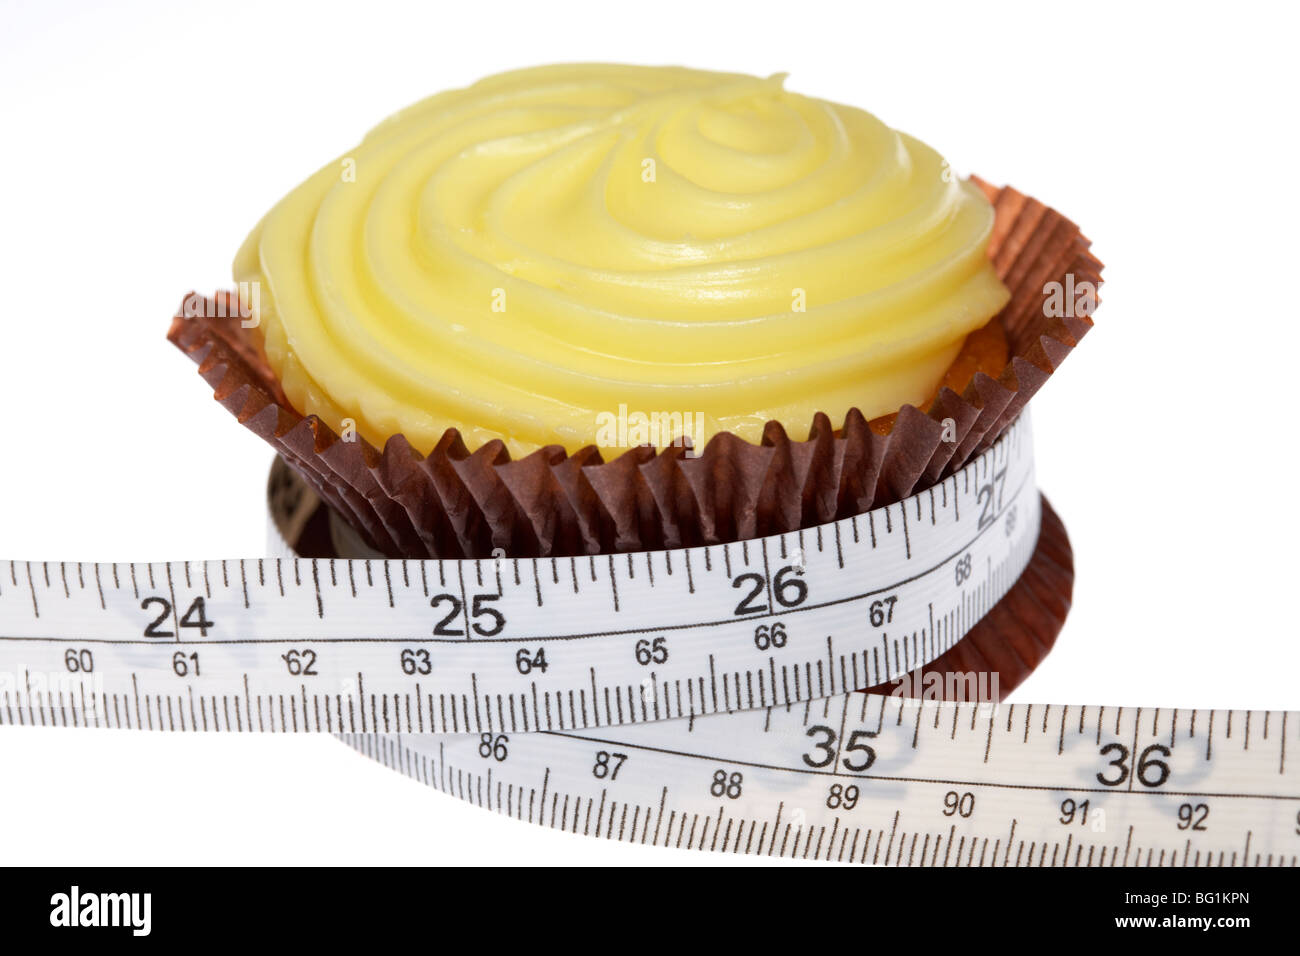 yellow cupcake with frosted icing squeezed by measuring tape with metric and imperial measurements Stock Photo